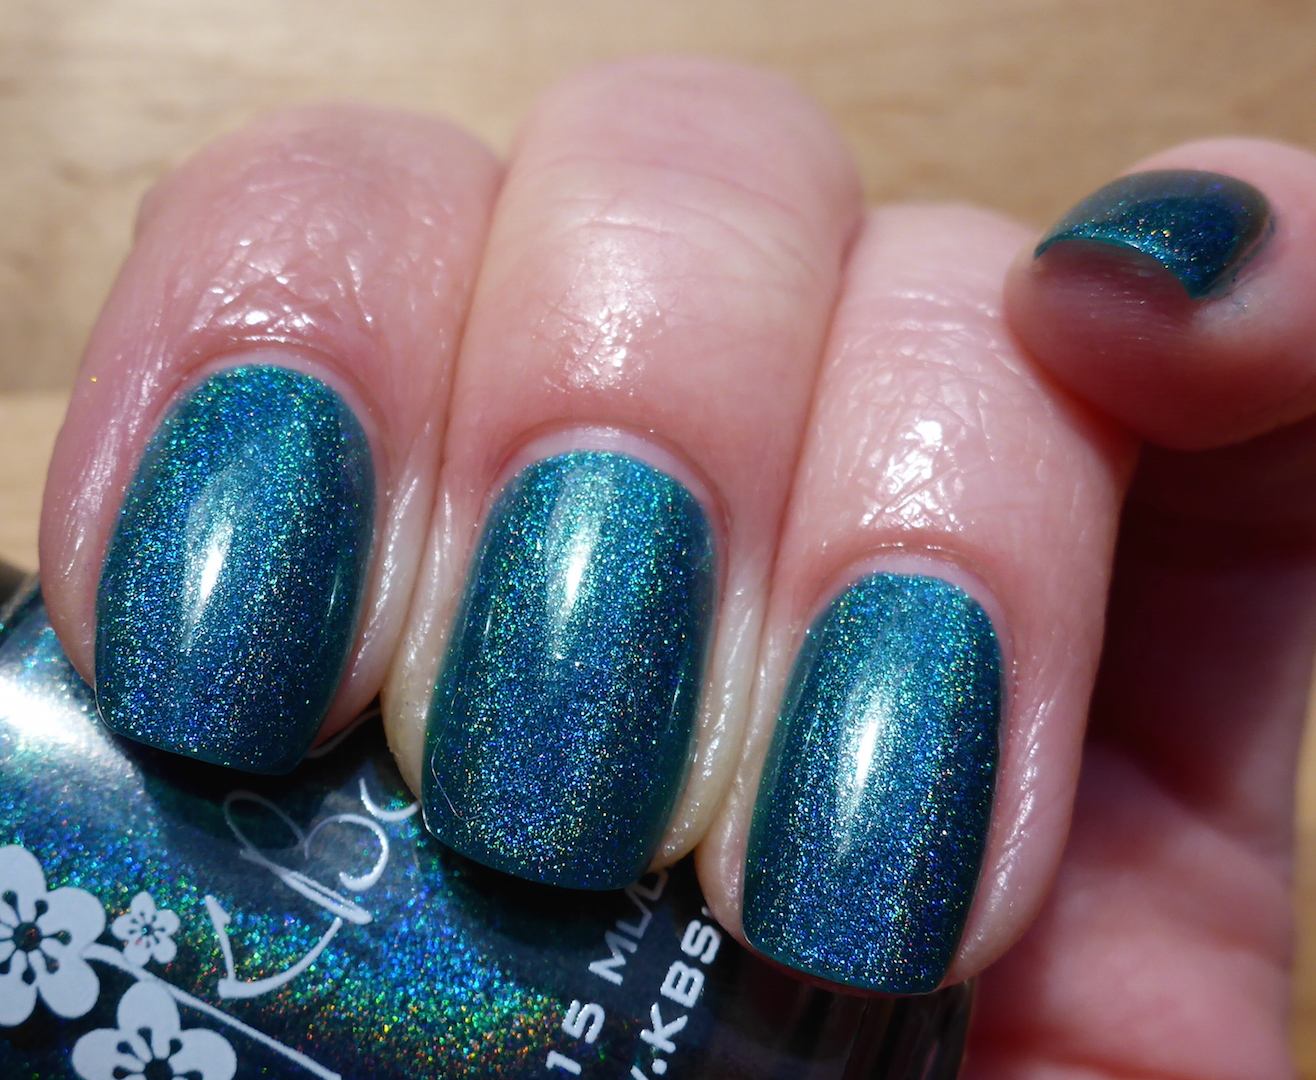 http://marzipany.blogspot.de/2015/04/lacke-in-farbe-und-bunt-kbshimmer-up.html